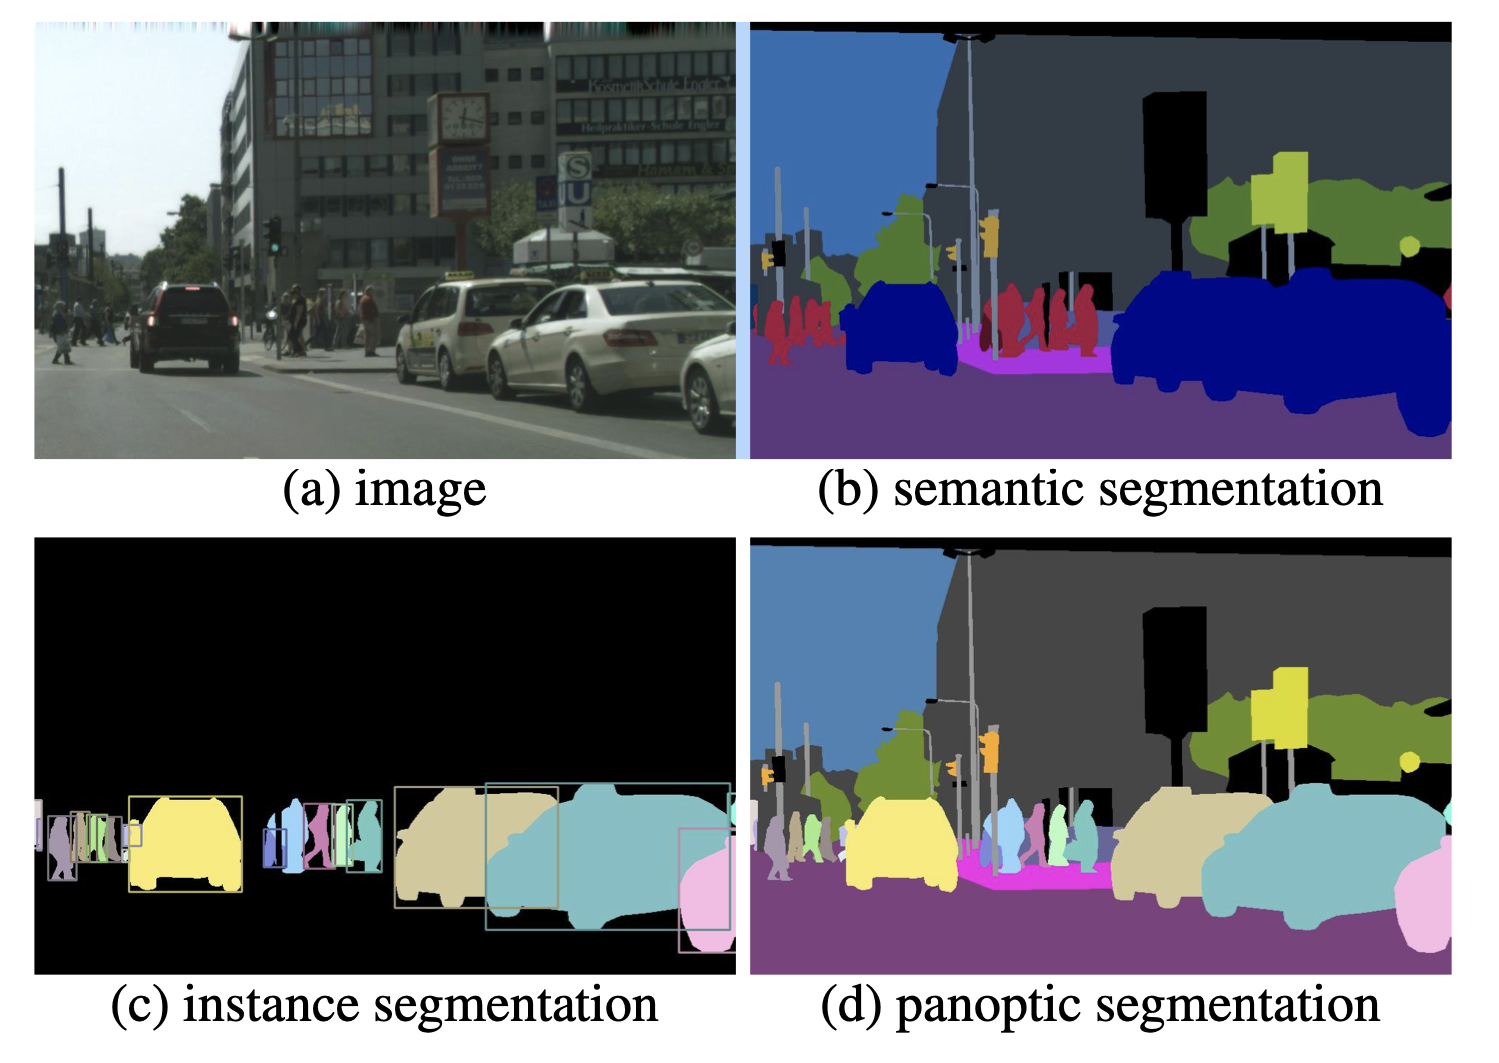 There are four images depicting a street scene: one is an original image, and the others show three kinds of segmentation that can be applied in image annotation. In this example, the objects of interest are the cars and the people. Image (a) is the original image. In image (b), the people and the cars are annotated as the foreground and the street, buildings, and traffic signs are annotated as the background. This is semantic segmentation. In image (c), the people and cars are annotated in a way that makes it possible to count them. This is instance segmentation. In image (d), the people and cars are annotated individually so they can be counted, and the street, building and traffic signs are visible as the background. Photo credit: Panoptic Segmentation, CVPR 2019